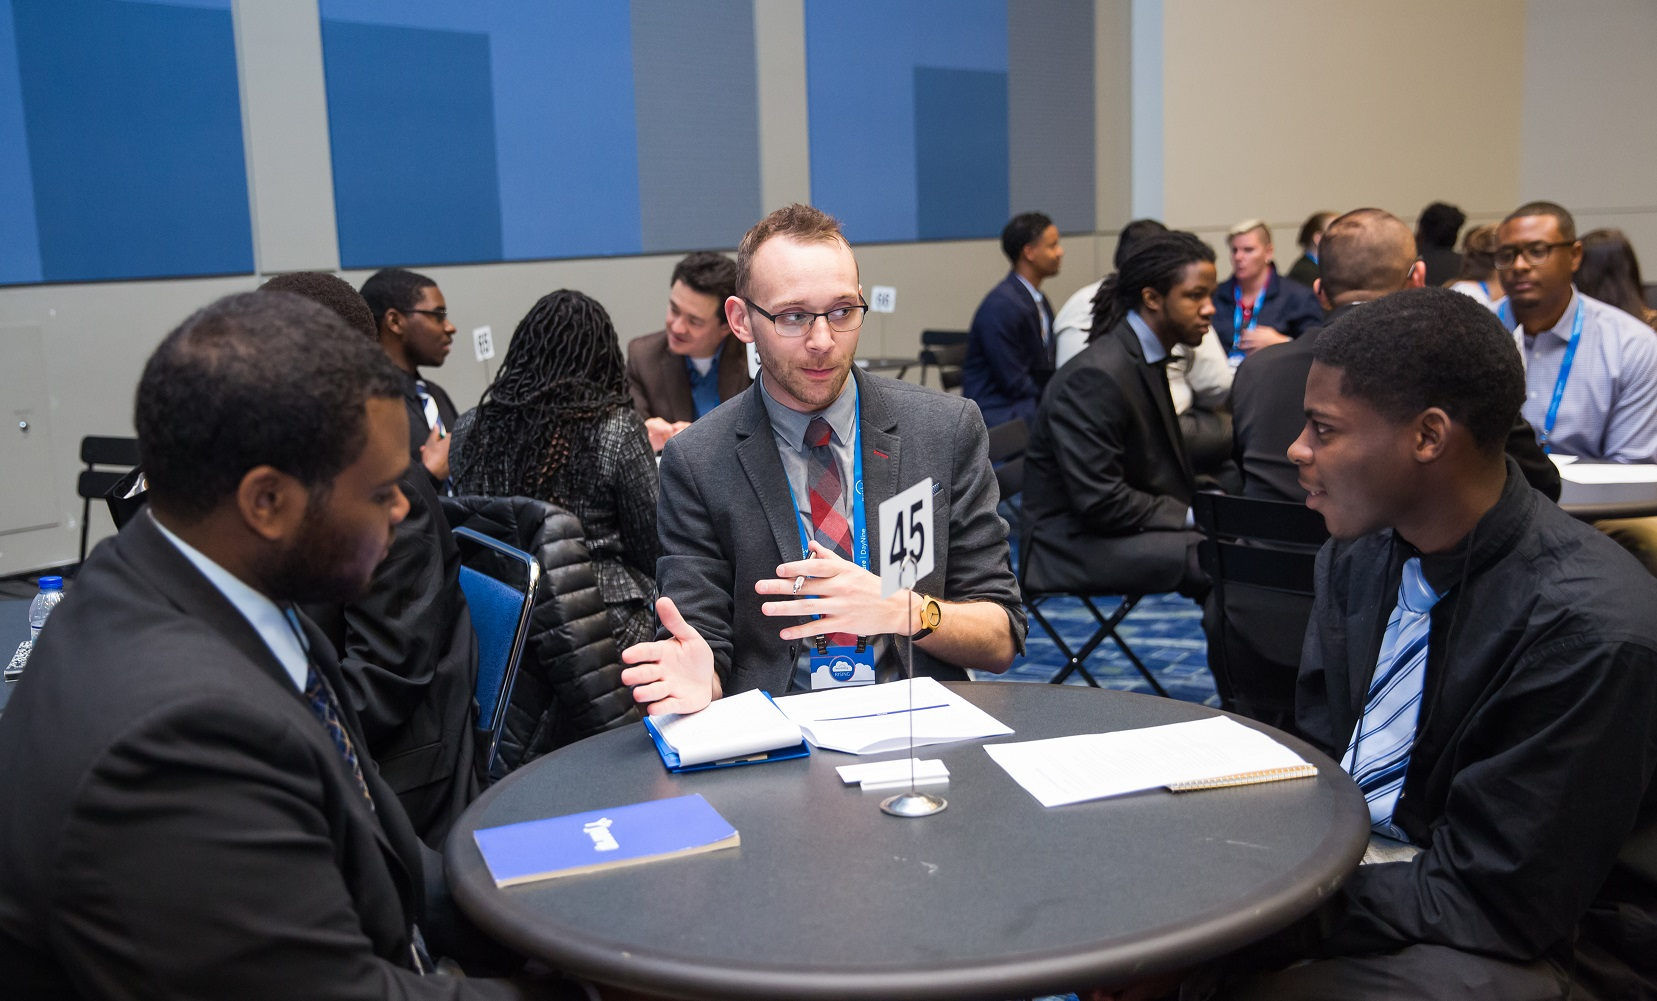 Workday customers mentored Year Up Students at Workday Rising in Chicago.